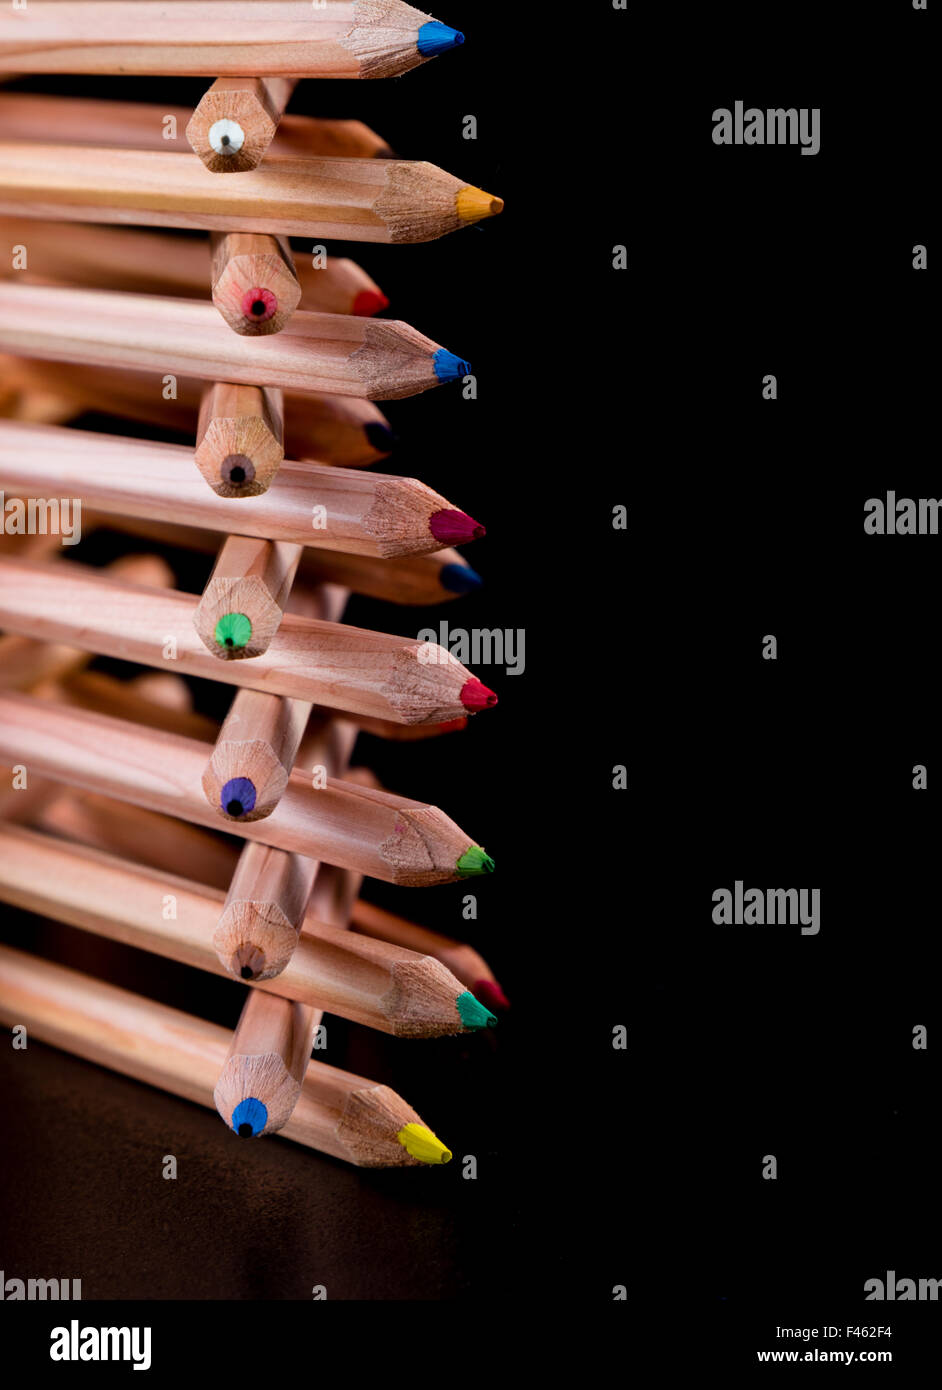 creatively stacked color pencils - Stock Image